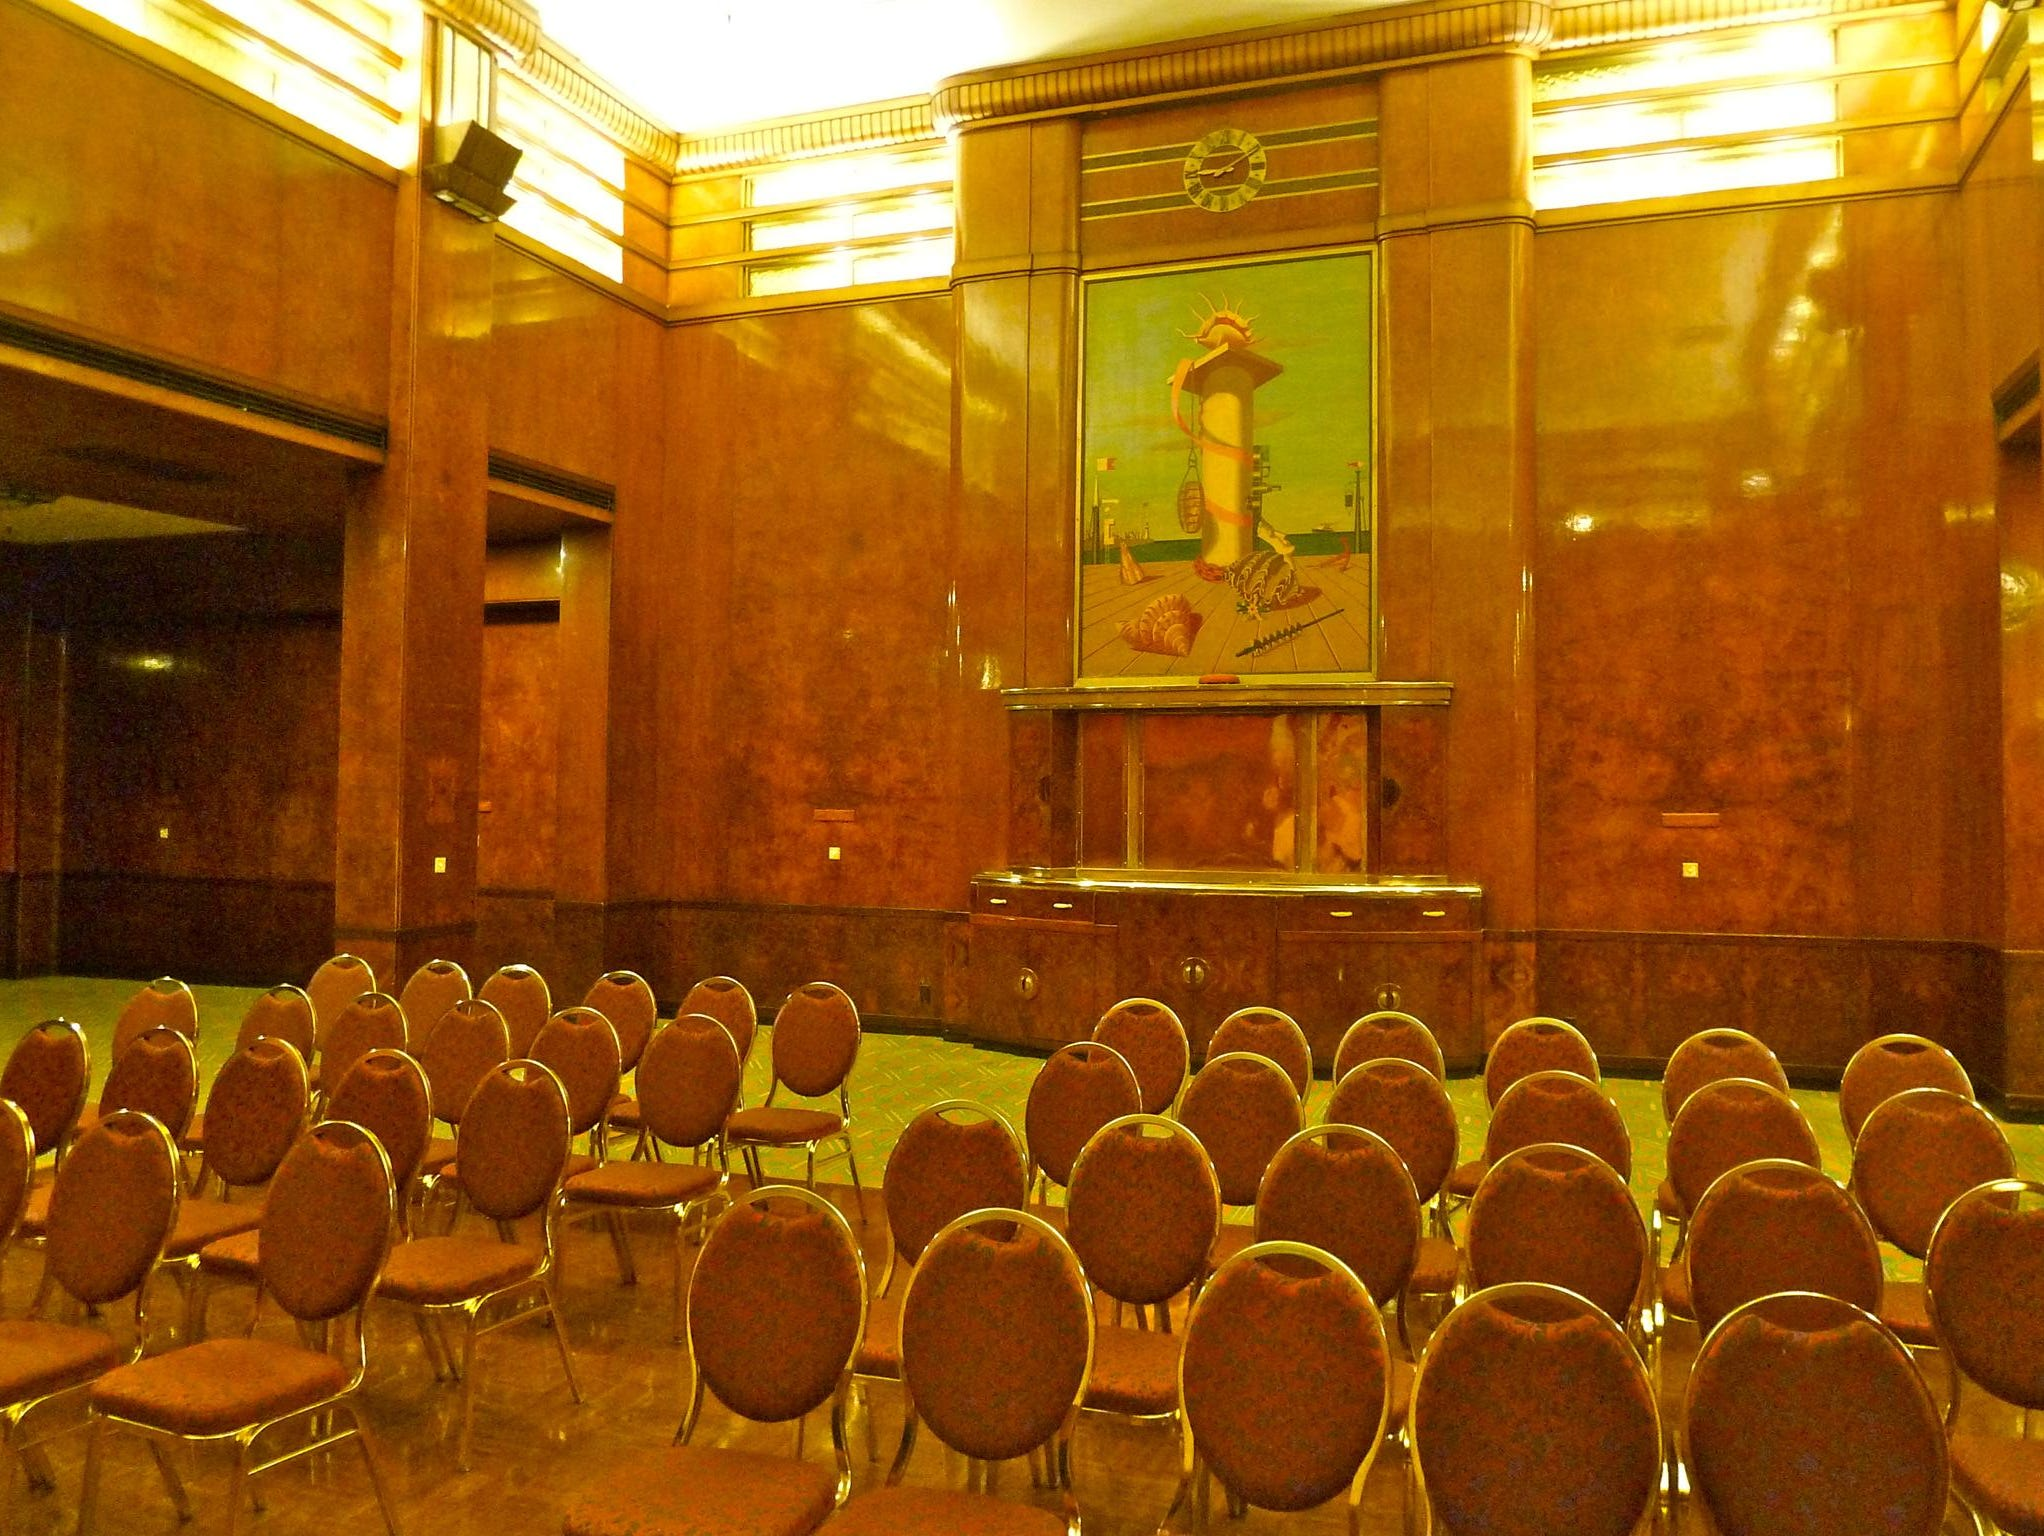 The brown oak-paneled Royal Salon follows the Queens Salon on Promenade Deck. The former first-class Smoking Room is another towering banquet and convention space. Its main focal points are two oil paintings by Edward Wadsworth. This is a view facing aft.